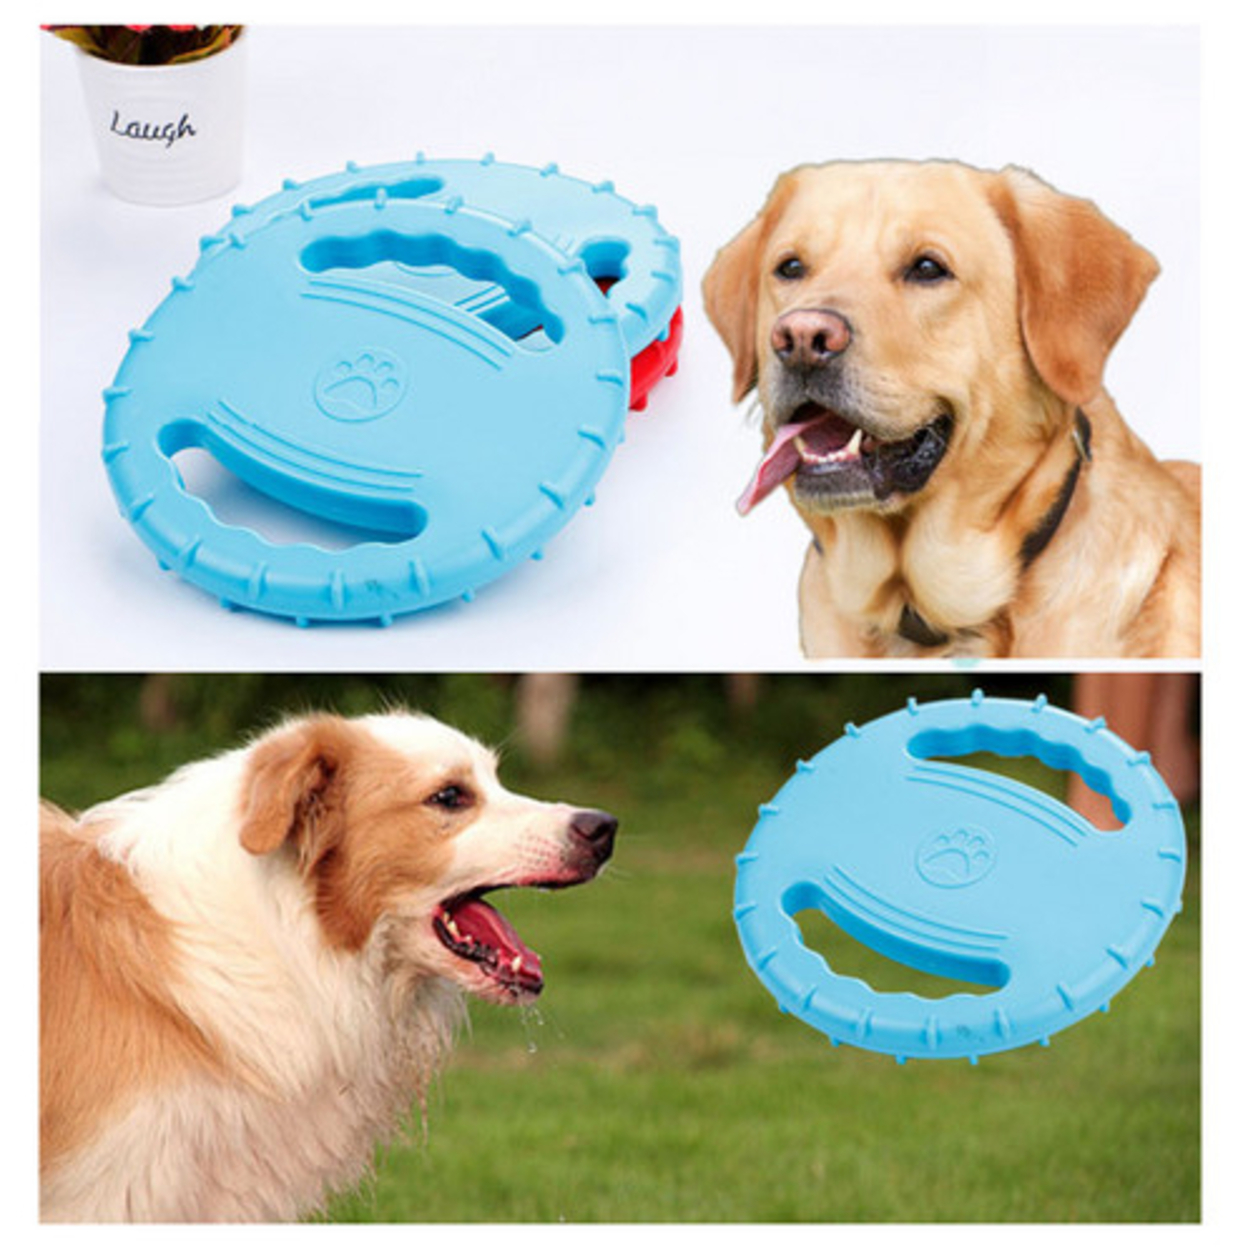 Indestructible Dog Flying Disc Frisbee Toys Frisbee -blue Eco-friendly Non-toxic - red 59fab2c799336a020010eb38